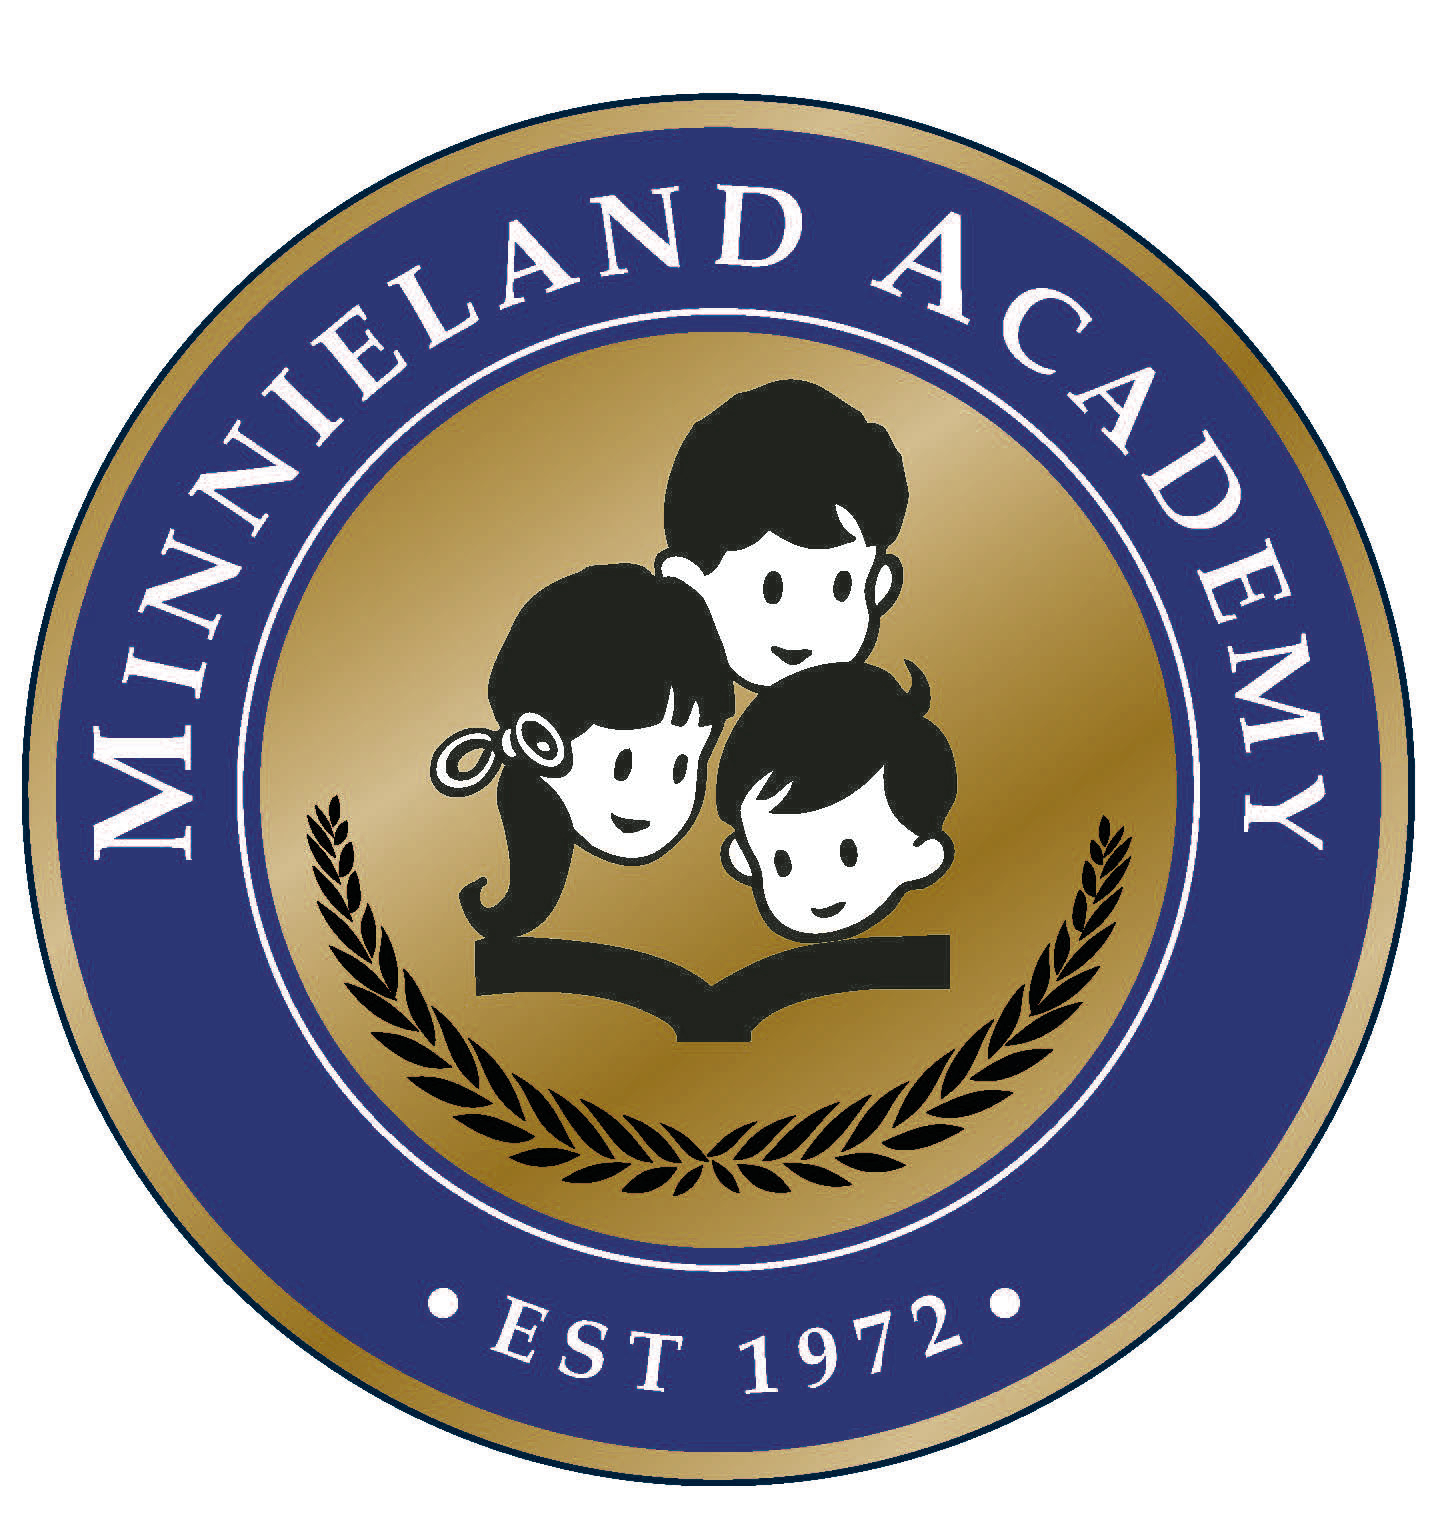 Minnieland Academy at Wellington